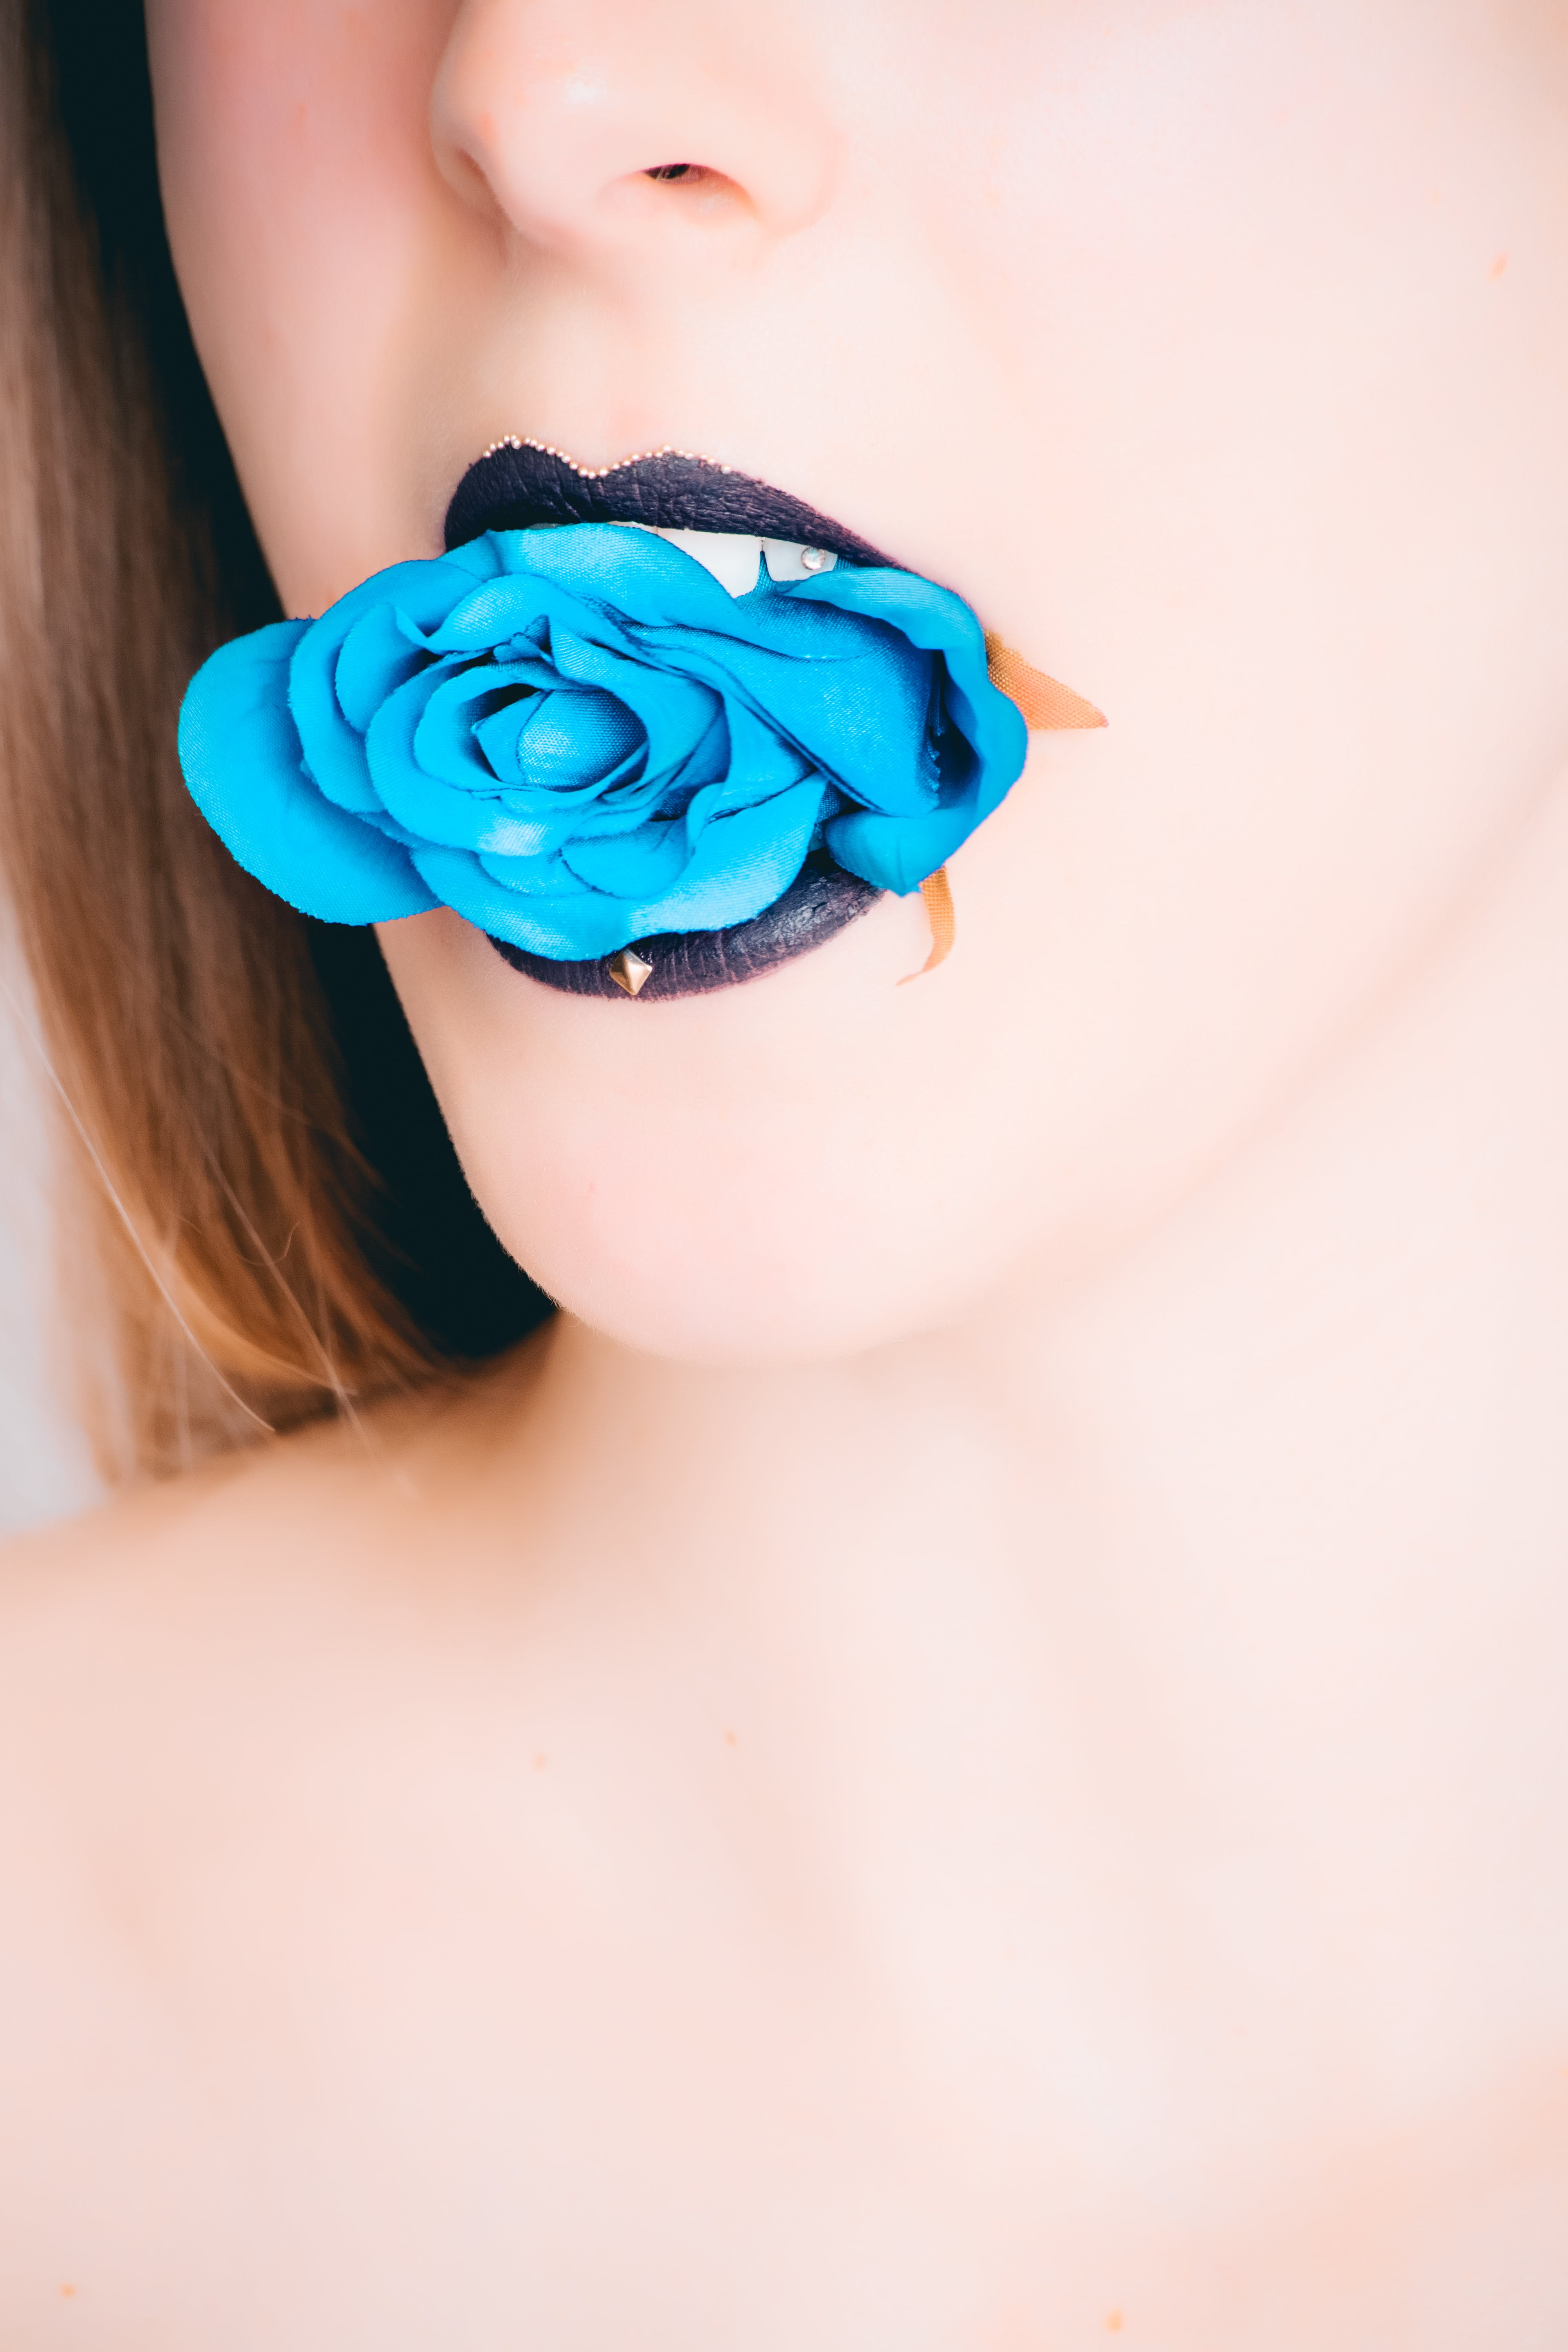 Woman With Black Lipstick Biting Blue Rose